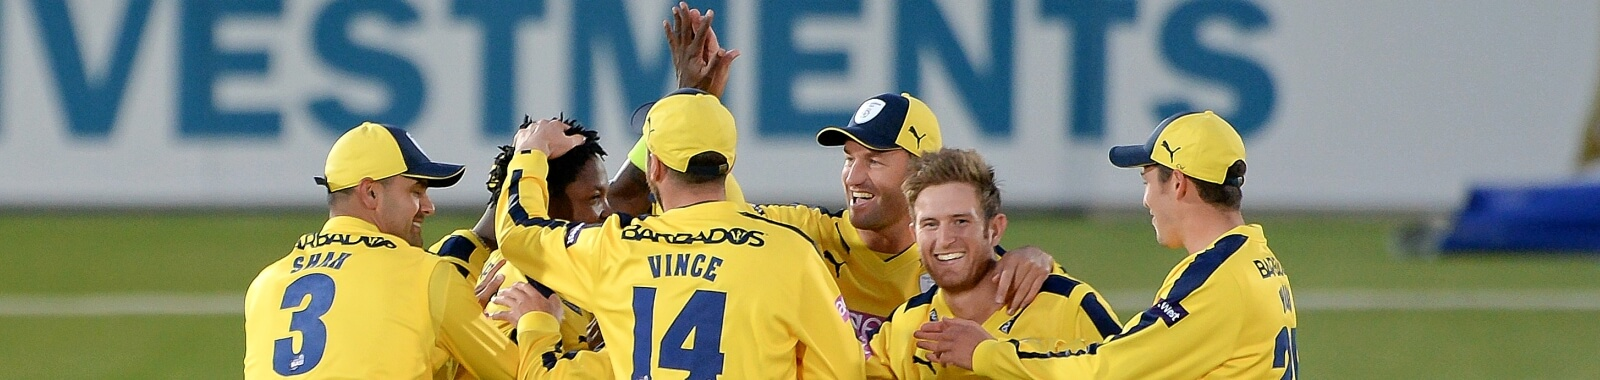 Big Increase in Ticket Sales for this Year's NatWest T20 Blast · The